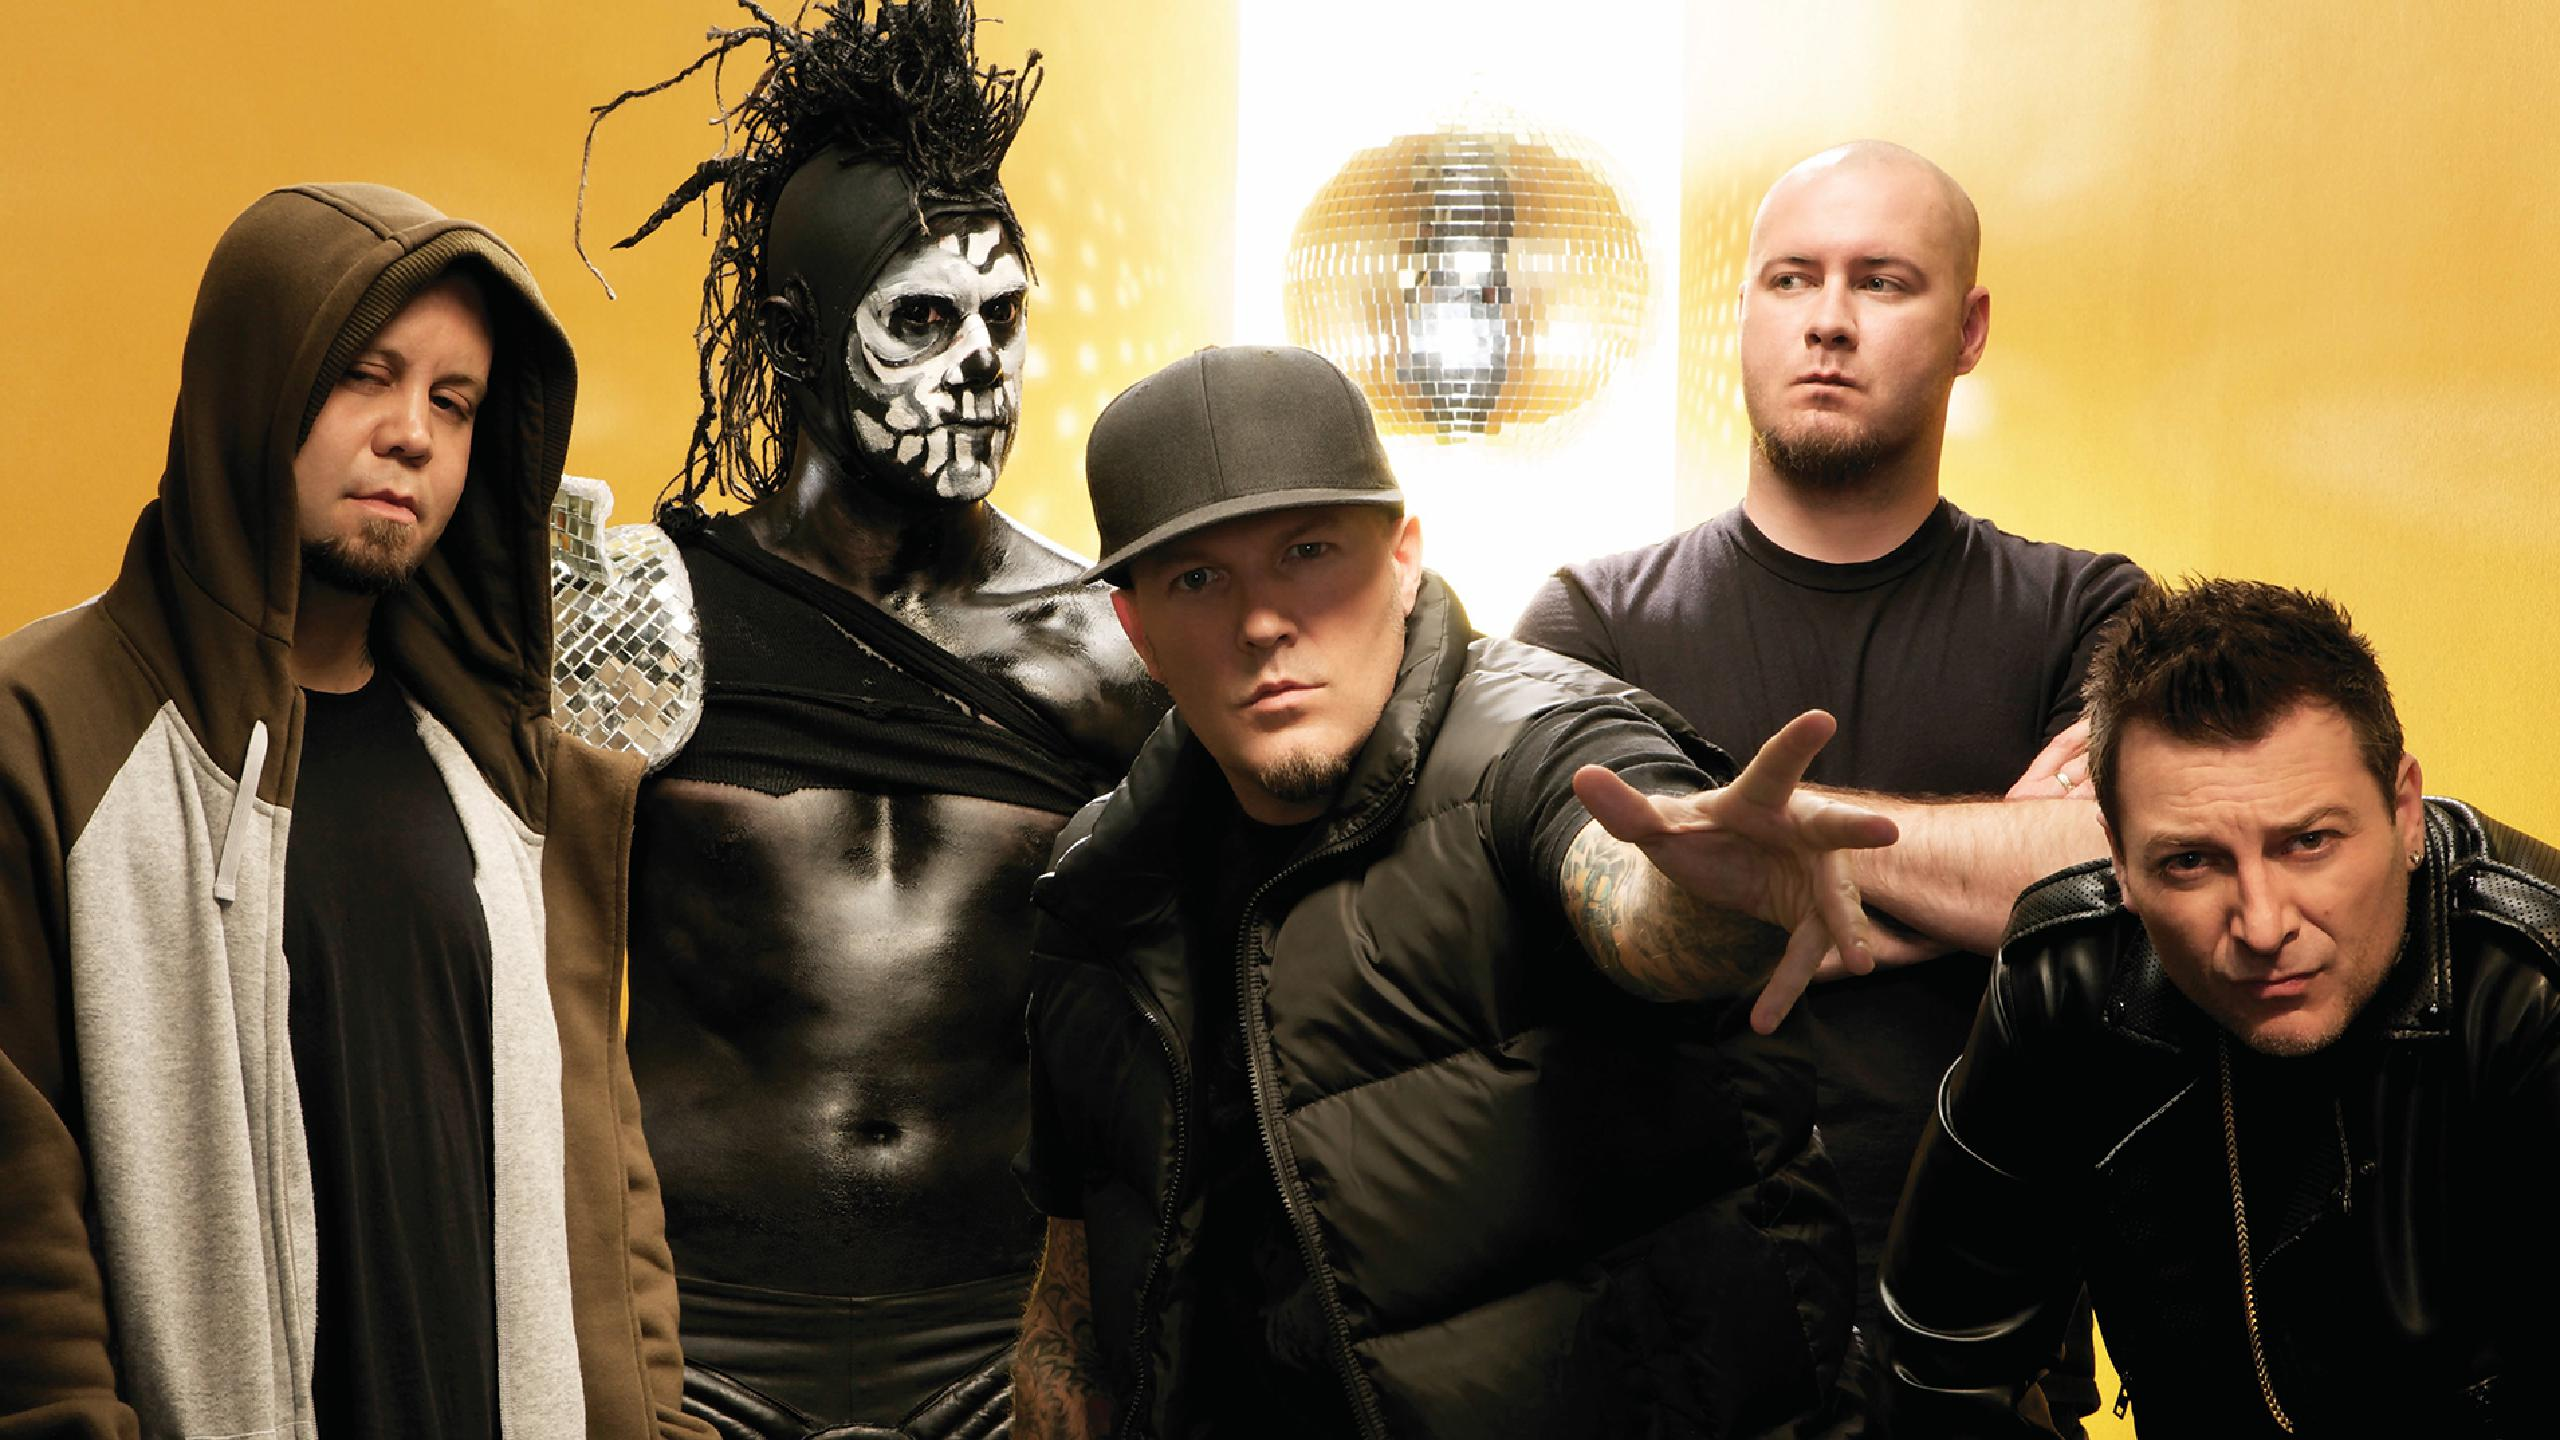 Limp Bizkit Tour Dates 2020 Limp Bizkit tour dates 2019 2020. Limp Bizkit tickets and concerts